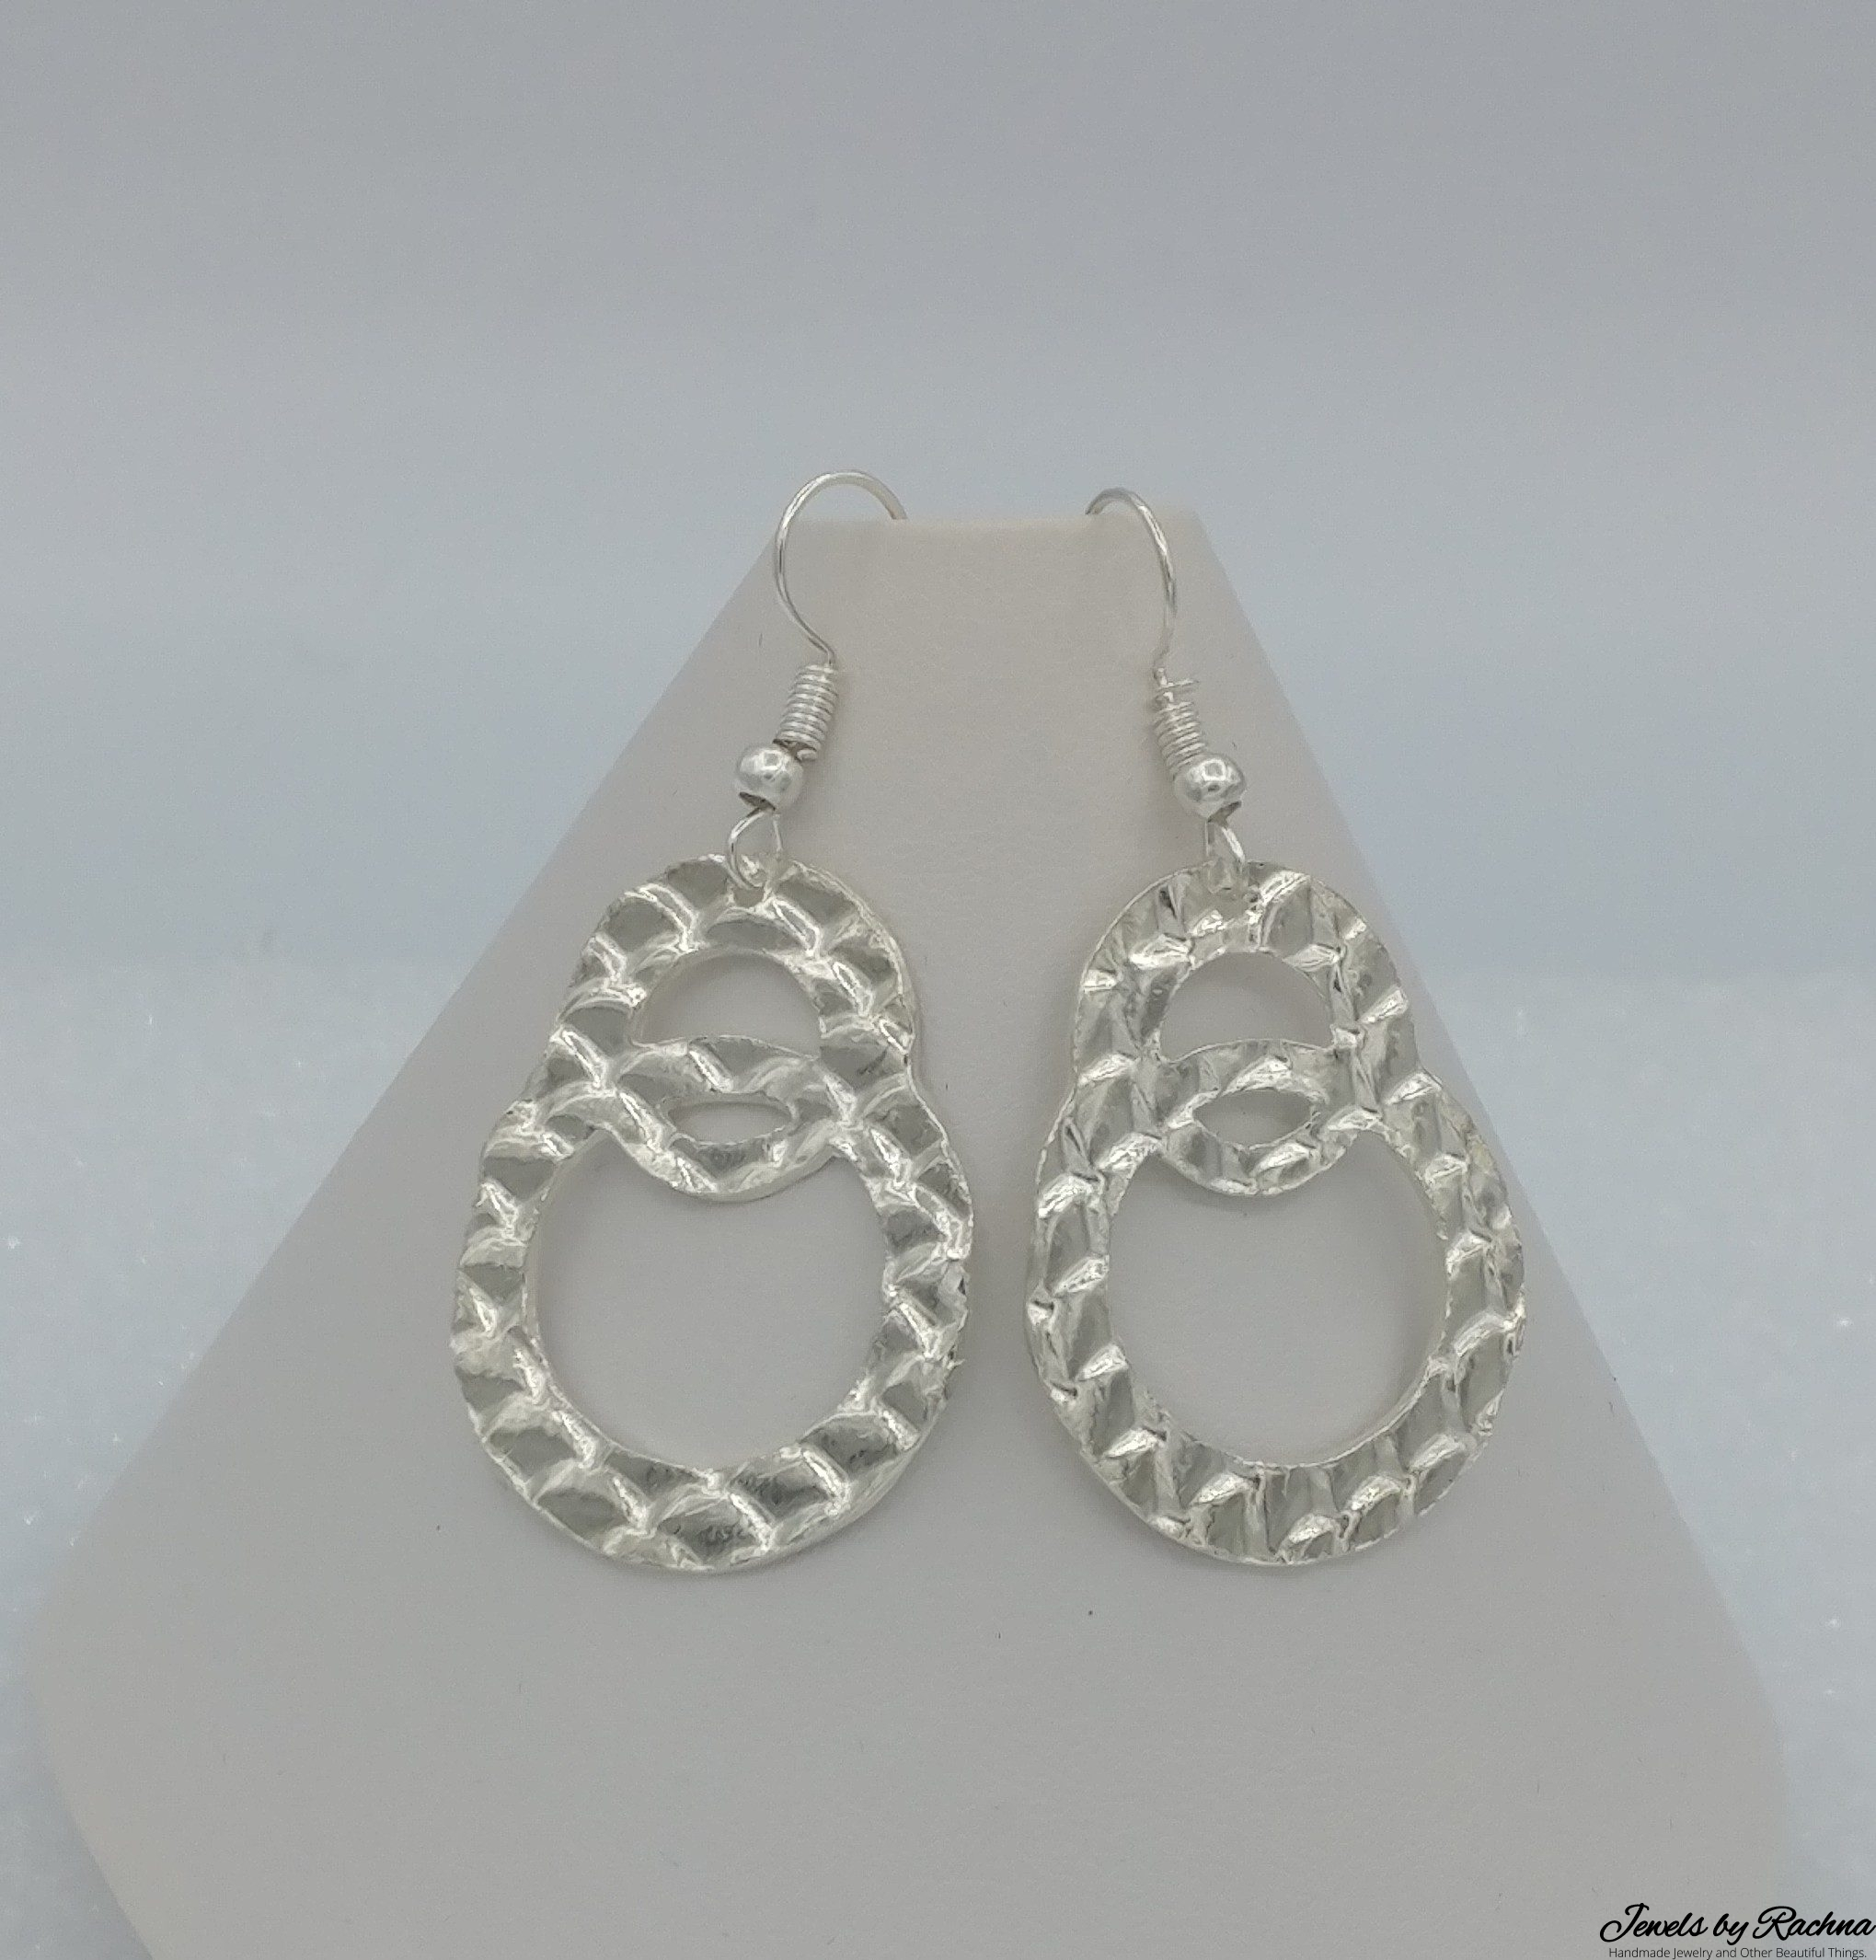 diamonds infinity en shop earring jewelry mj steven fine tension christensen earrings kretchmer